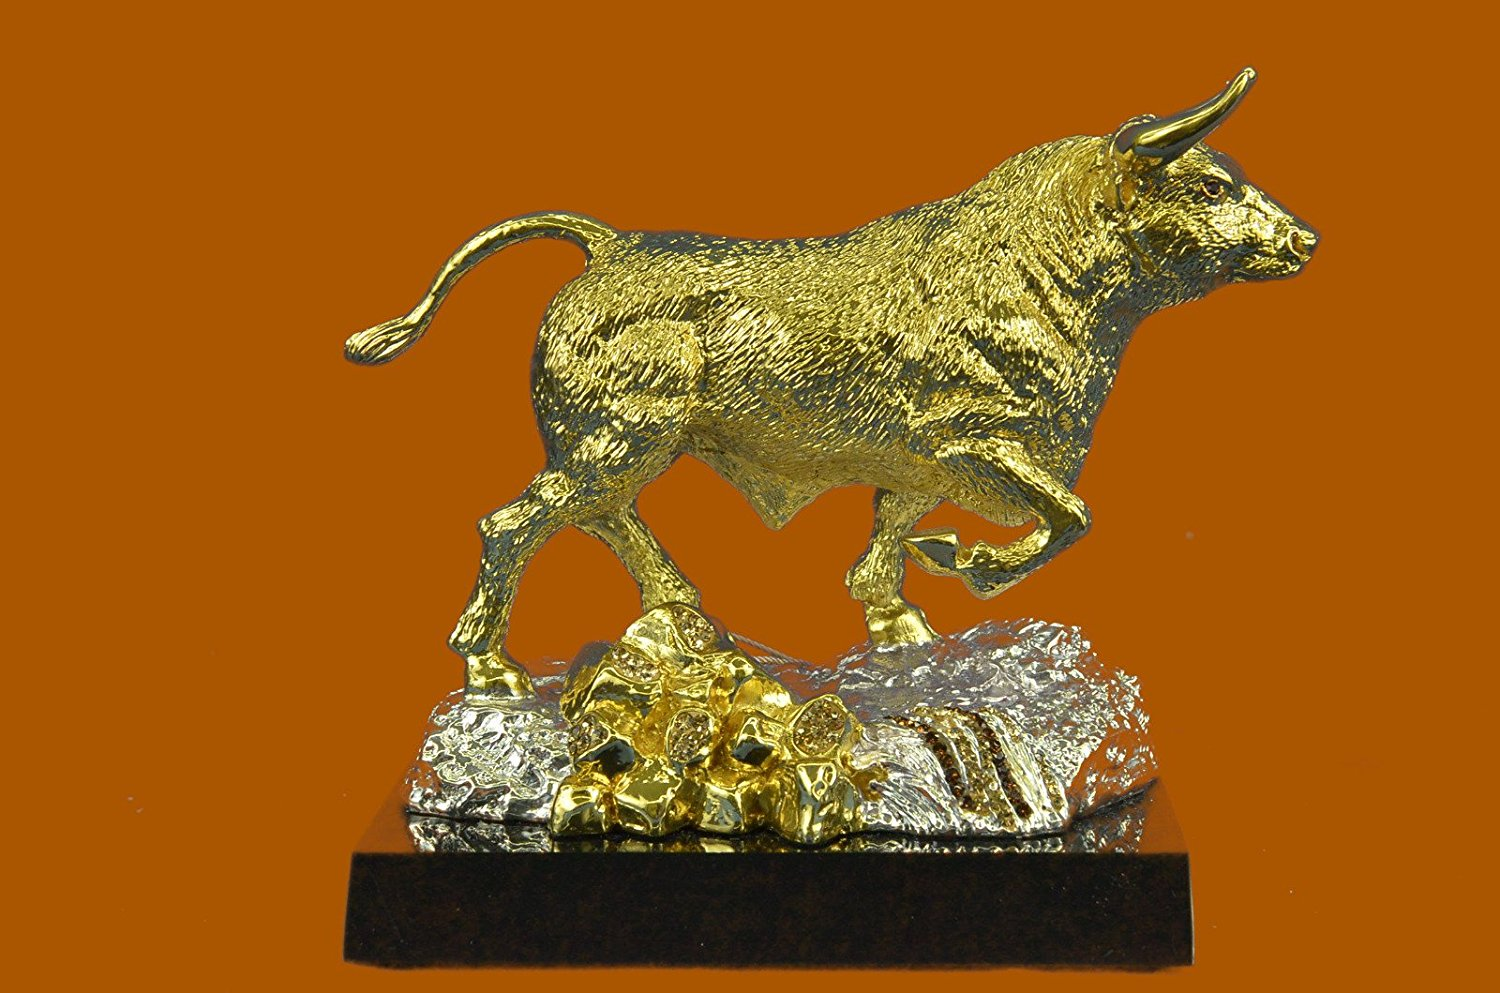 ...Handmade...European Bronze Sculpture Handcrafted Detailed 24K Gold Stock Market Bull Home Office Cabin Decor (SHO-824-UK) Bronze Sculpture Statues Figurine Nude Office & Home Décor Collectibles Sa